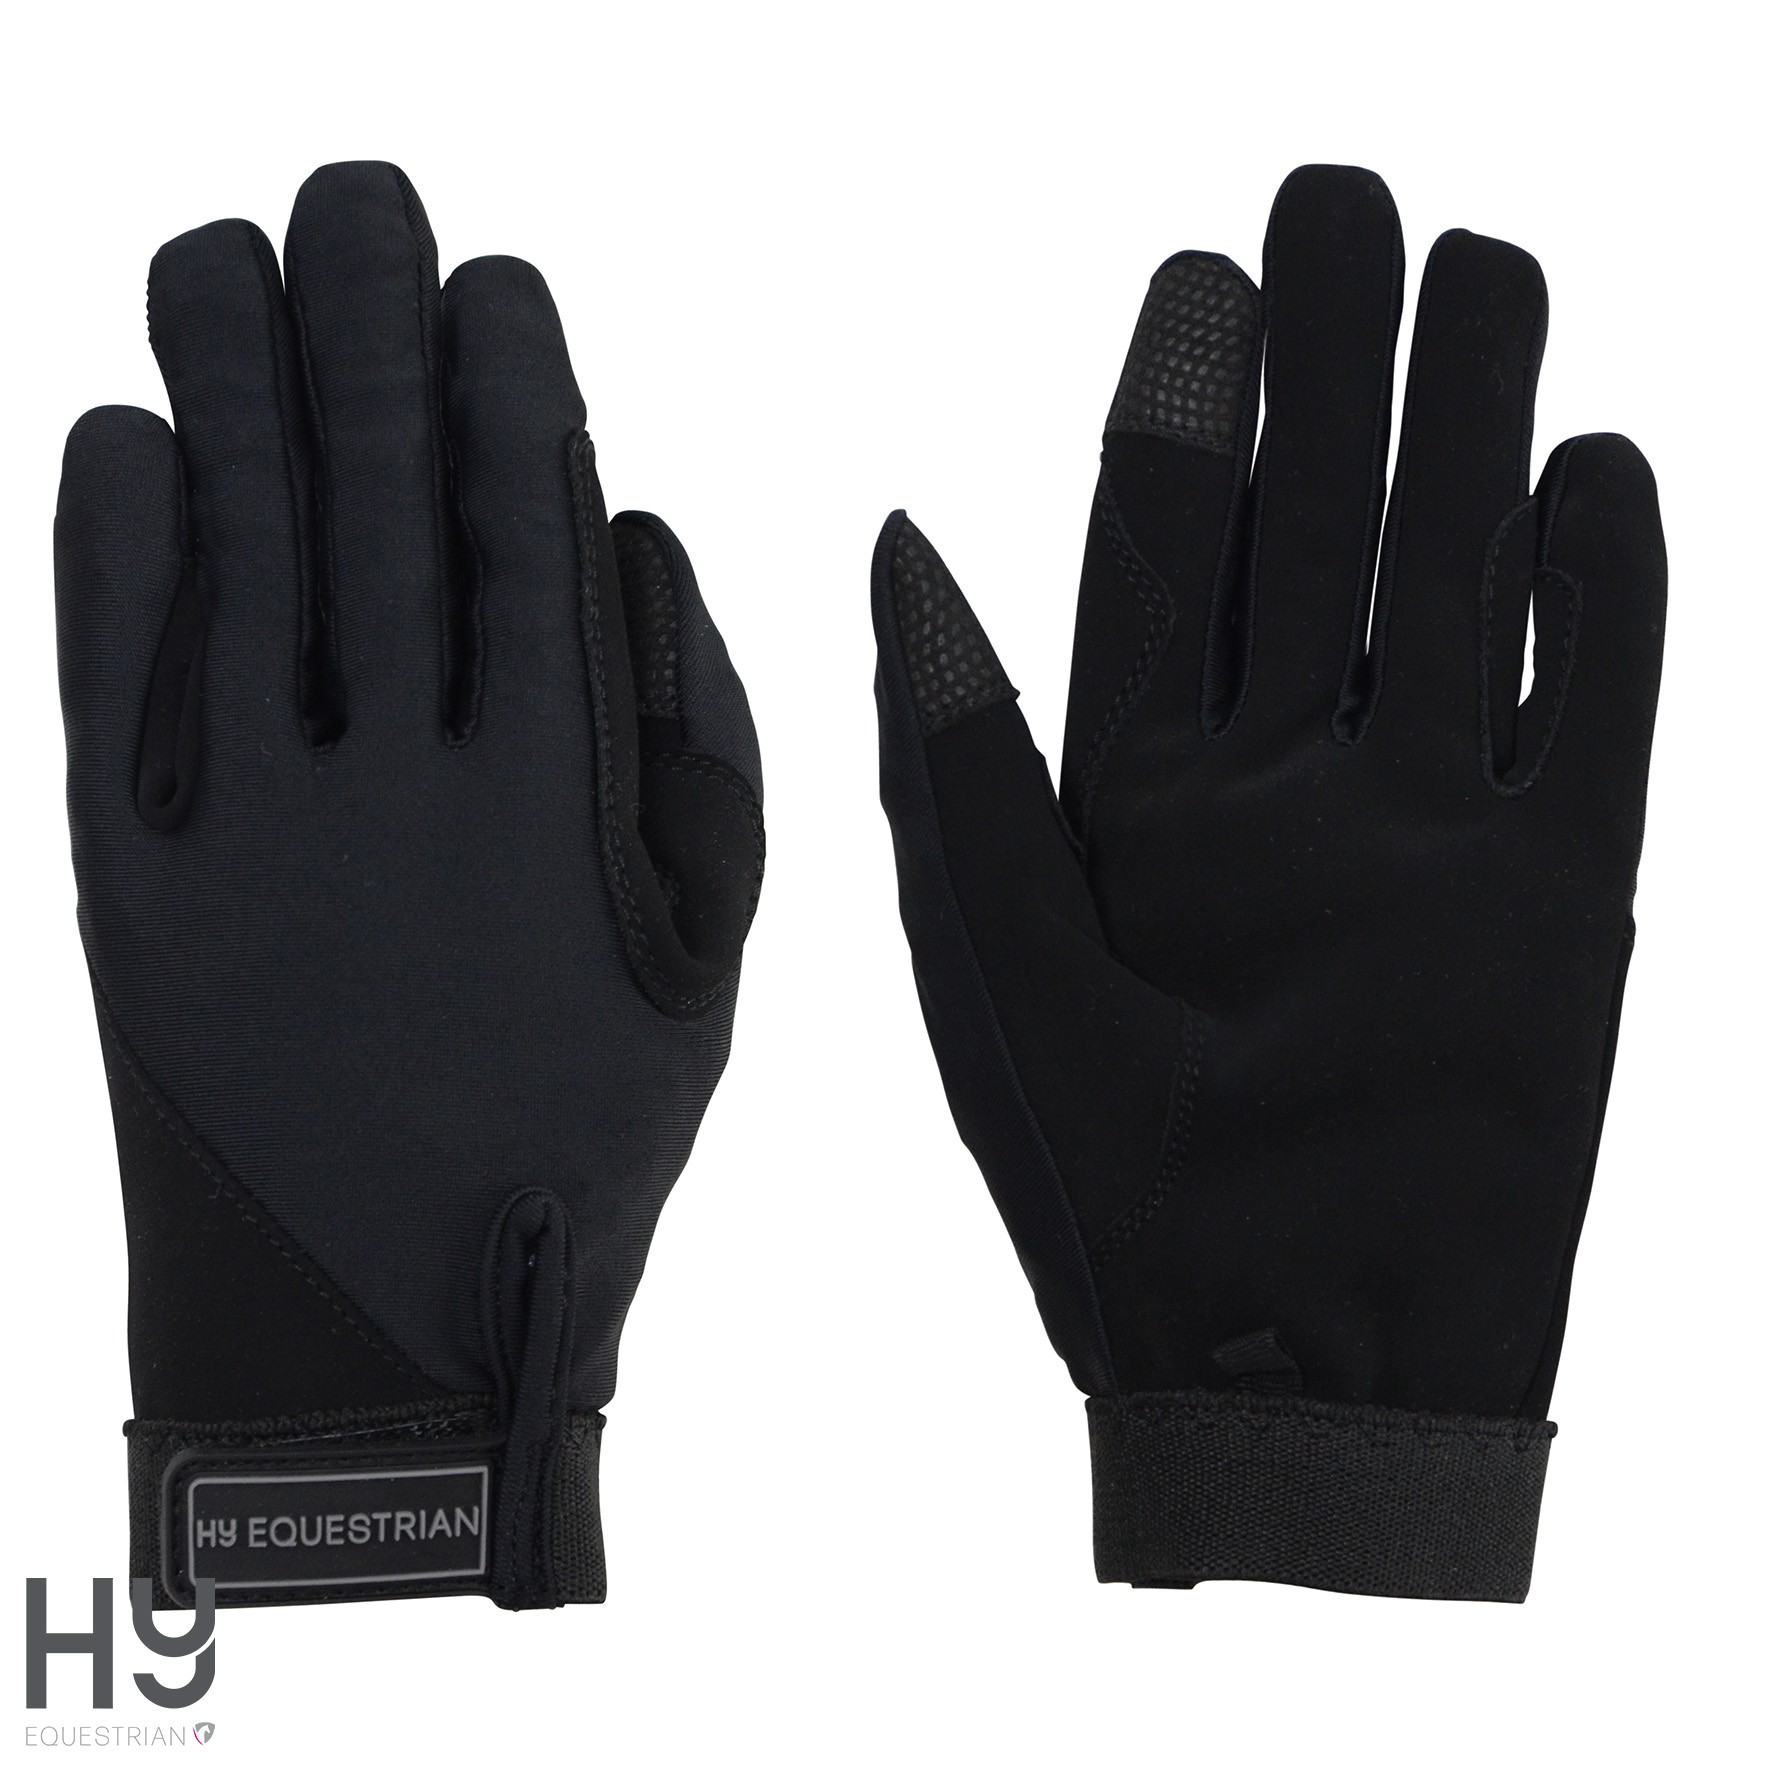 Hy Equestrian Absolute Fit Riding Glove